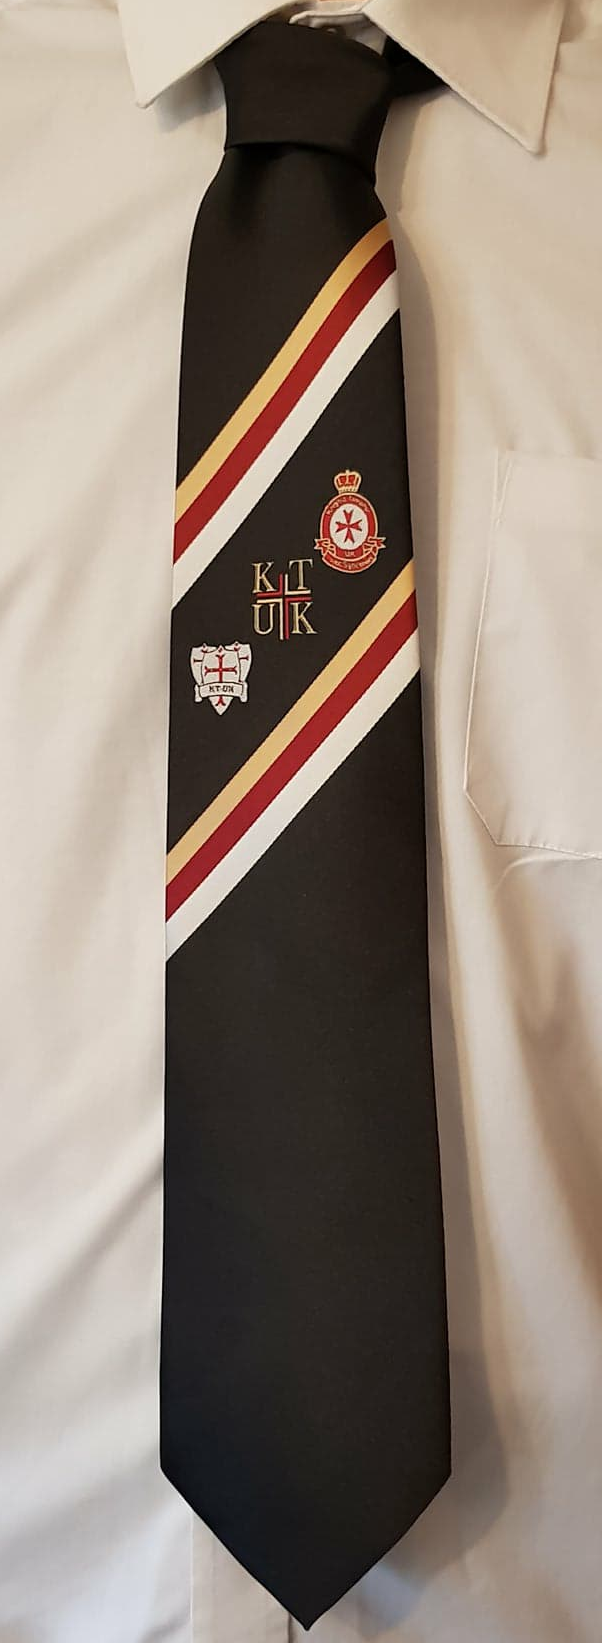 kt uk official gents tie